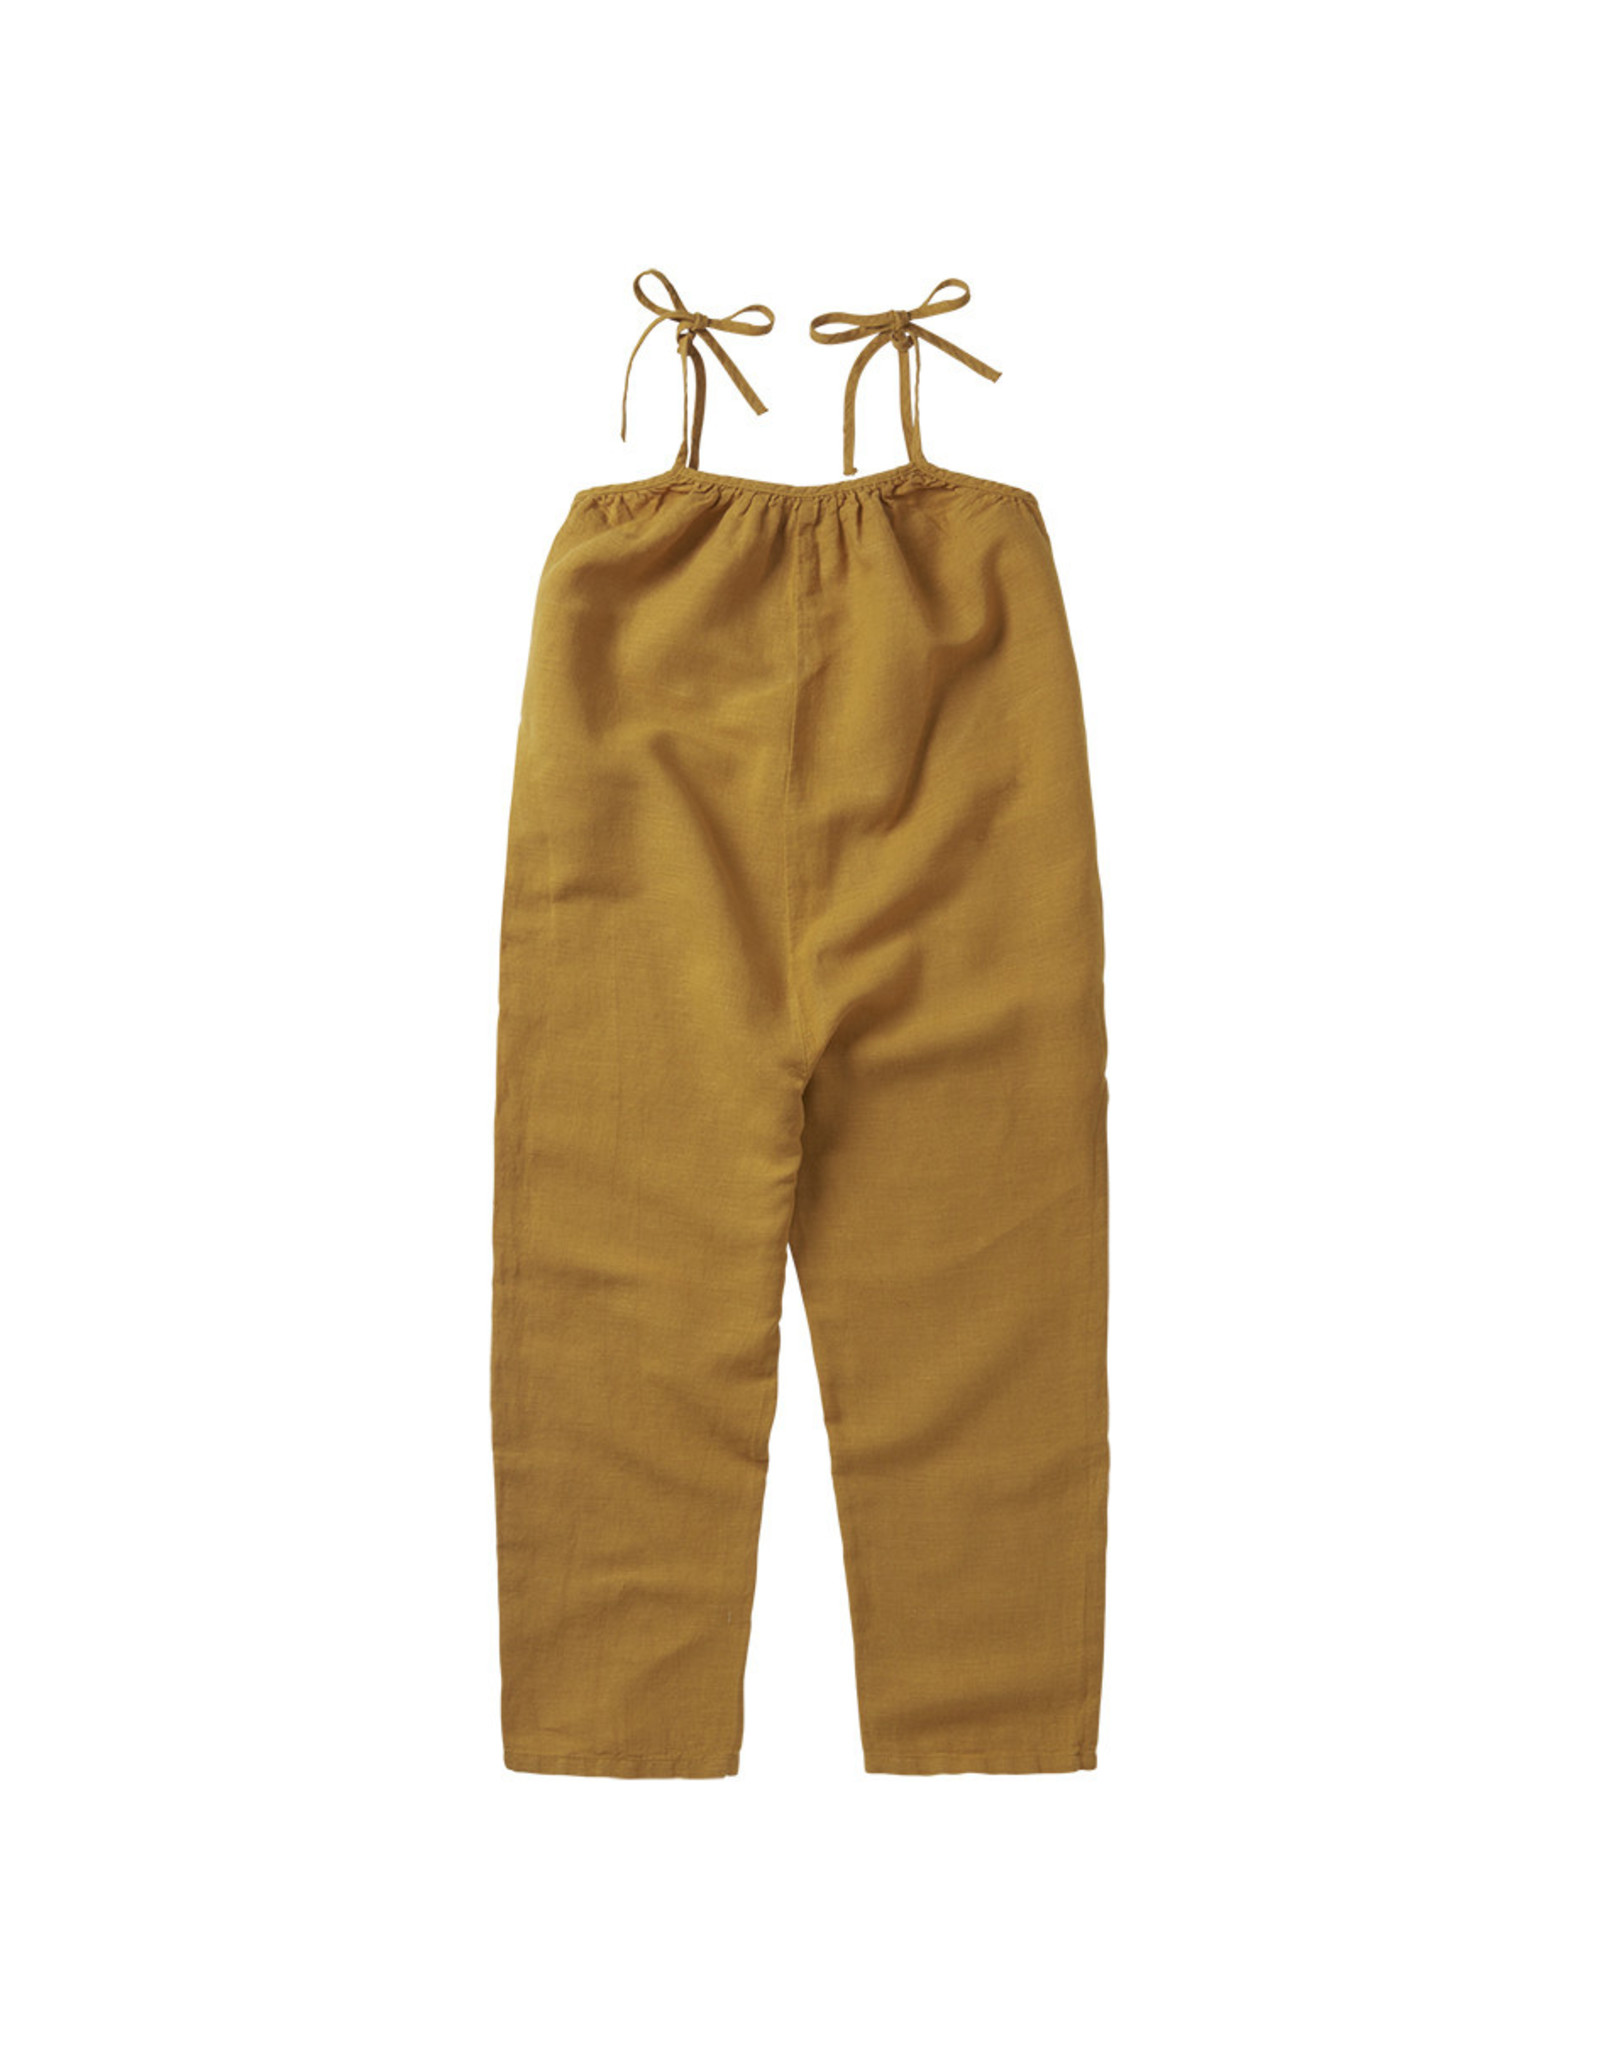 Mingo Linen dungaree spruce yellow